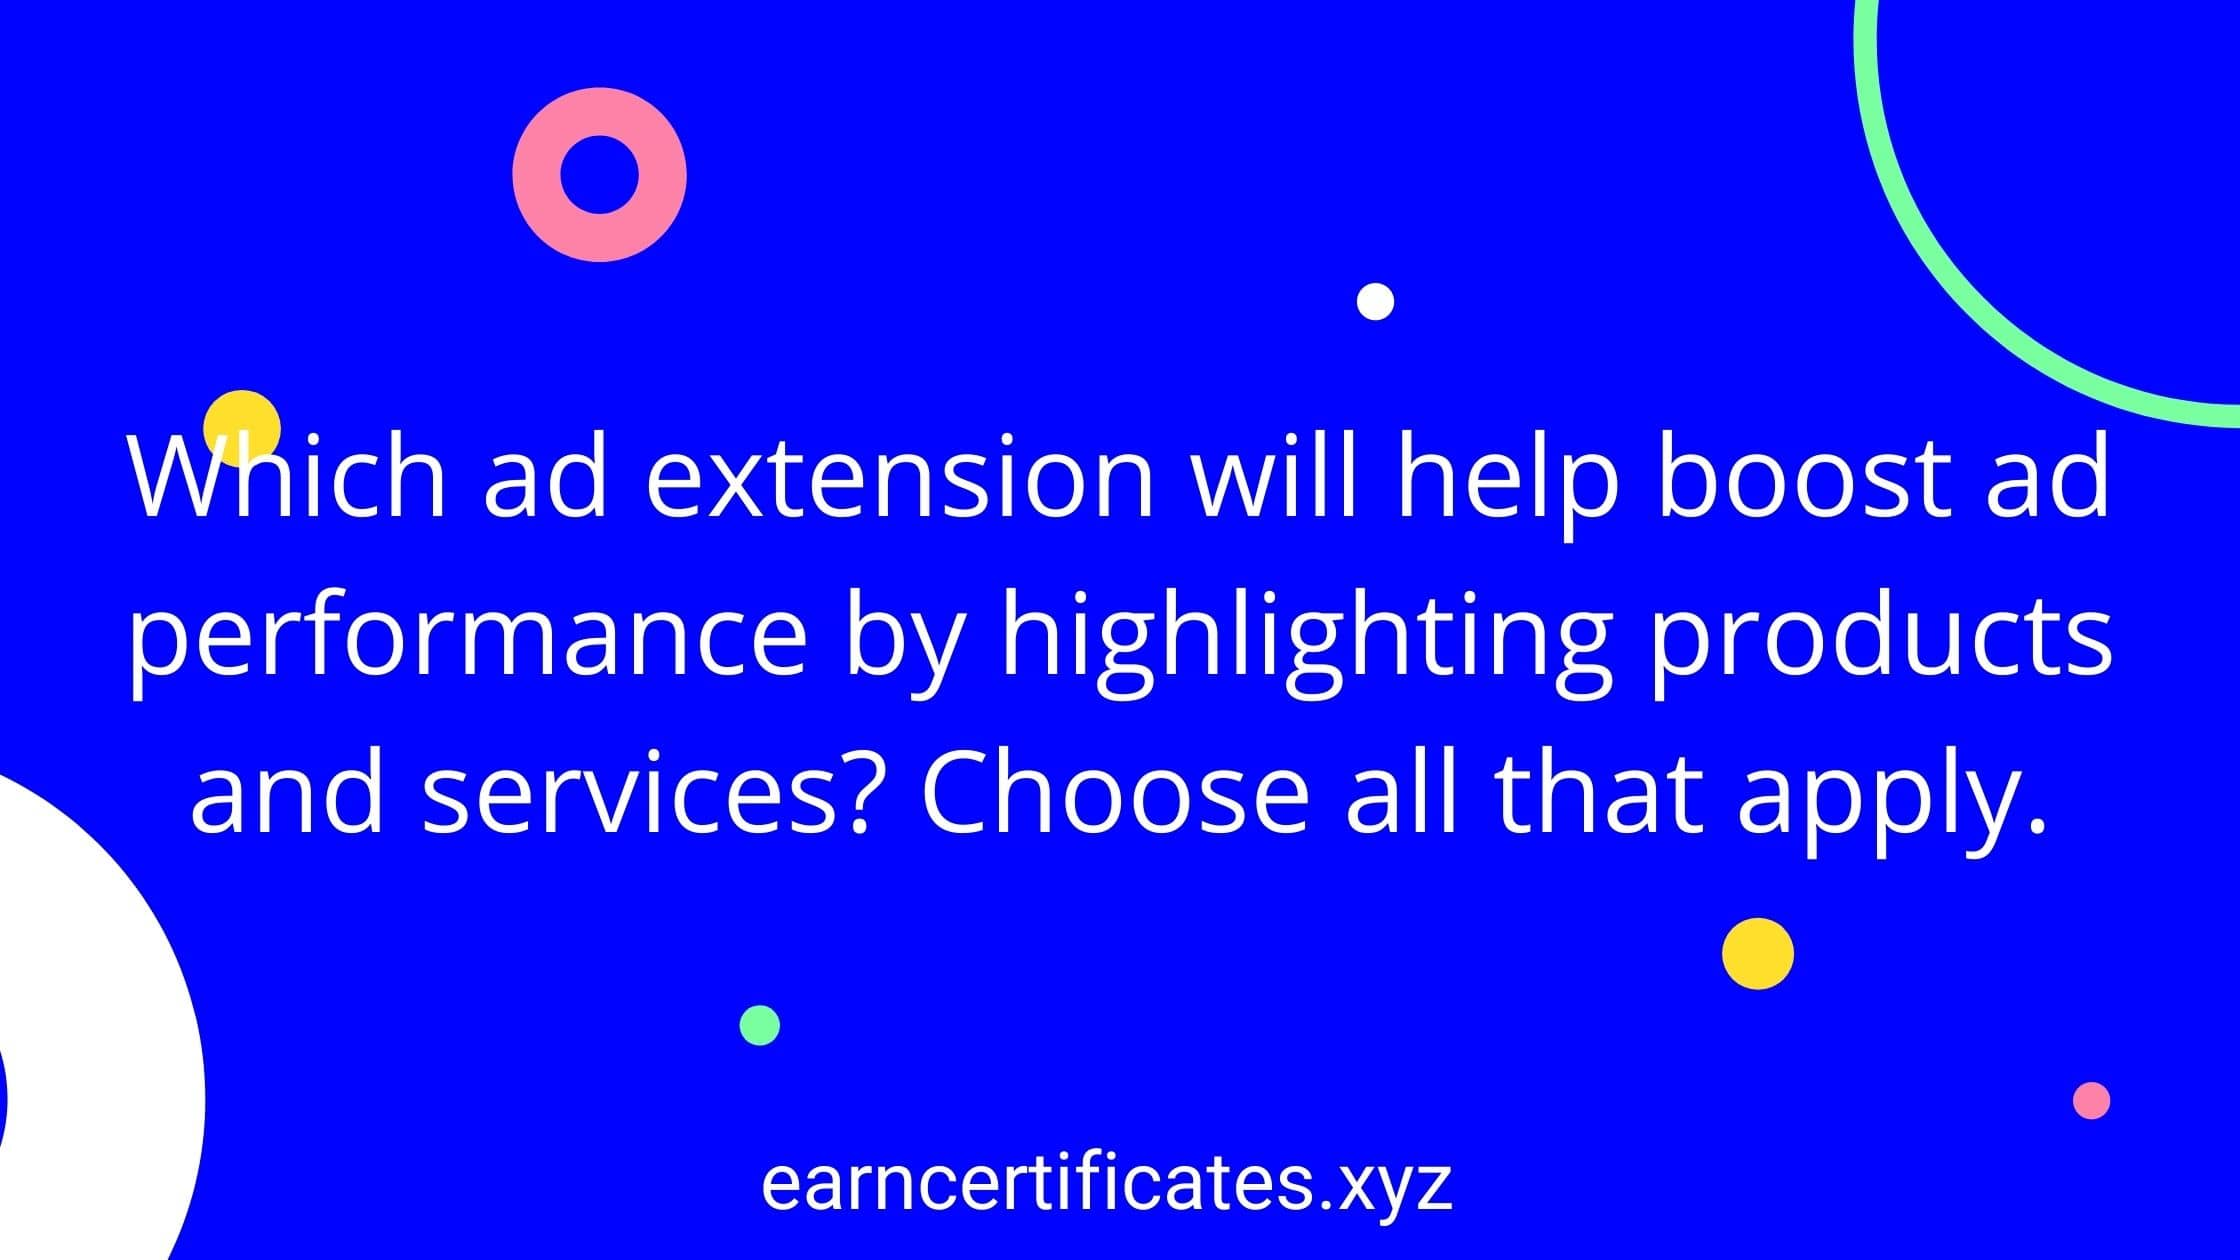 Which ad extension will help boost ad performance by highlighting products and services? Choose all that apply.